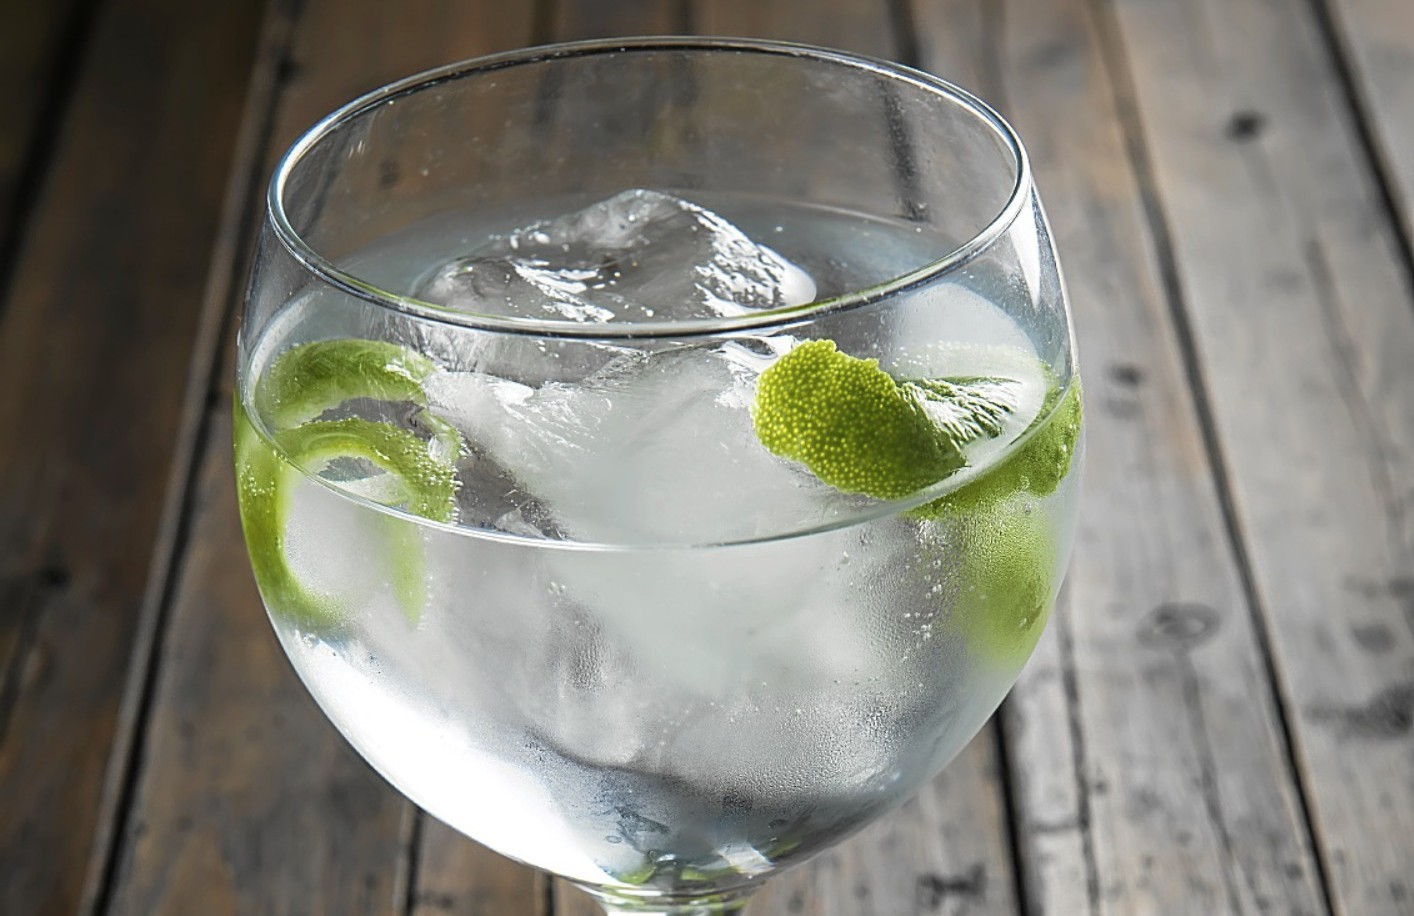 Gin and tonic, which goes far too well with sunshine - no matter how little we get.